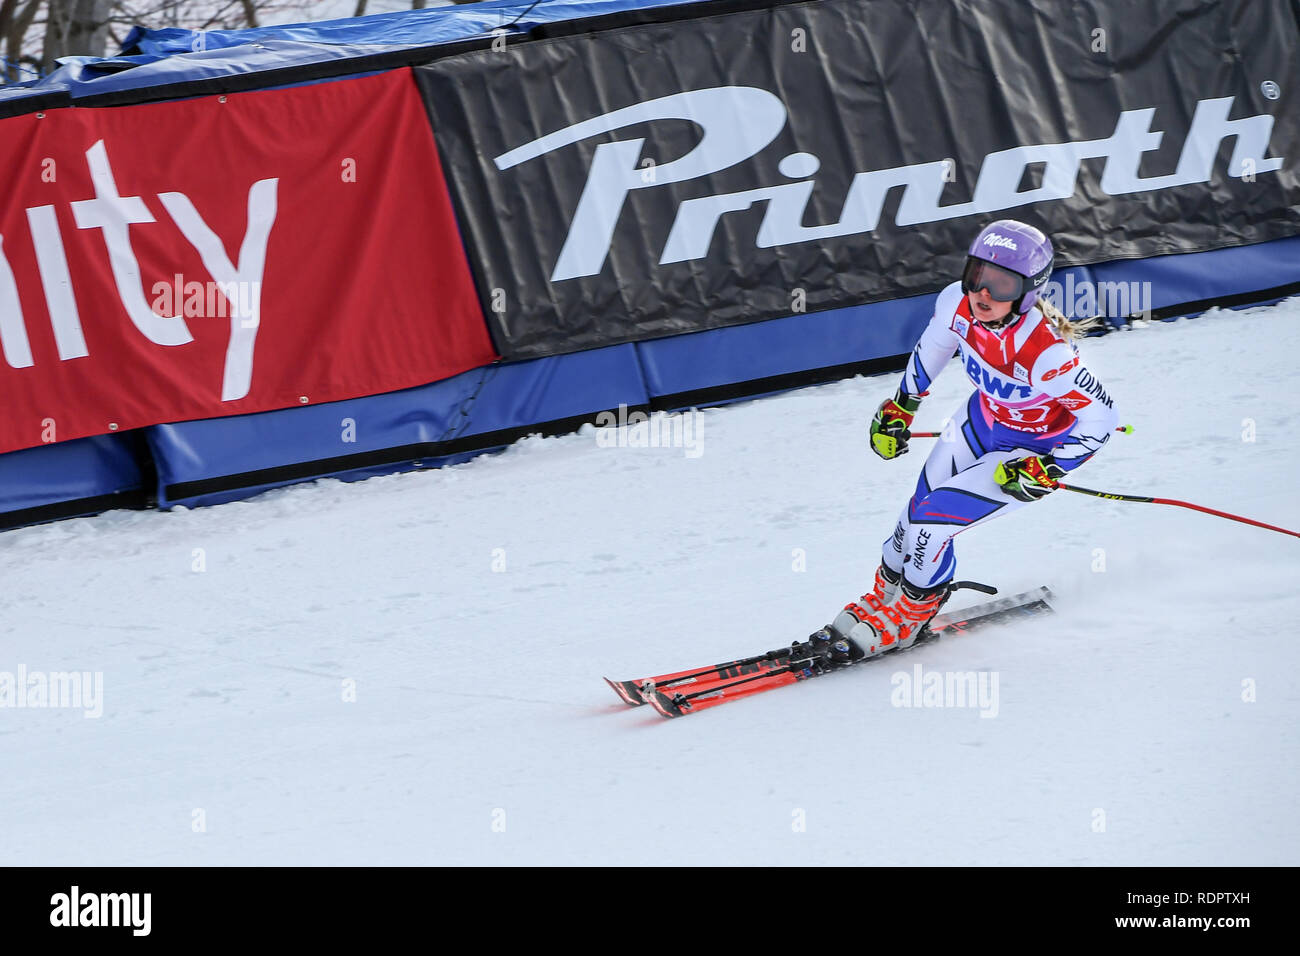 Killington Vt November 24 Tessa Worley Of France In The Finish Area After The Second Run Of The Giant Slalom At The Audi Fis Ski World Cup Stock Photo Alamy